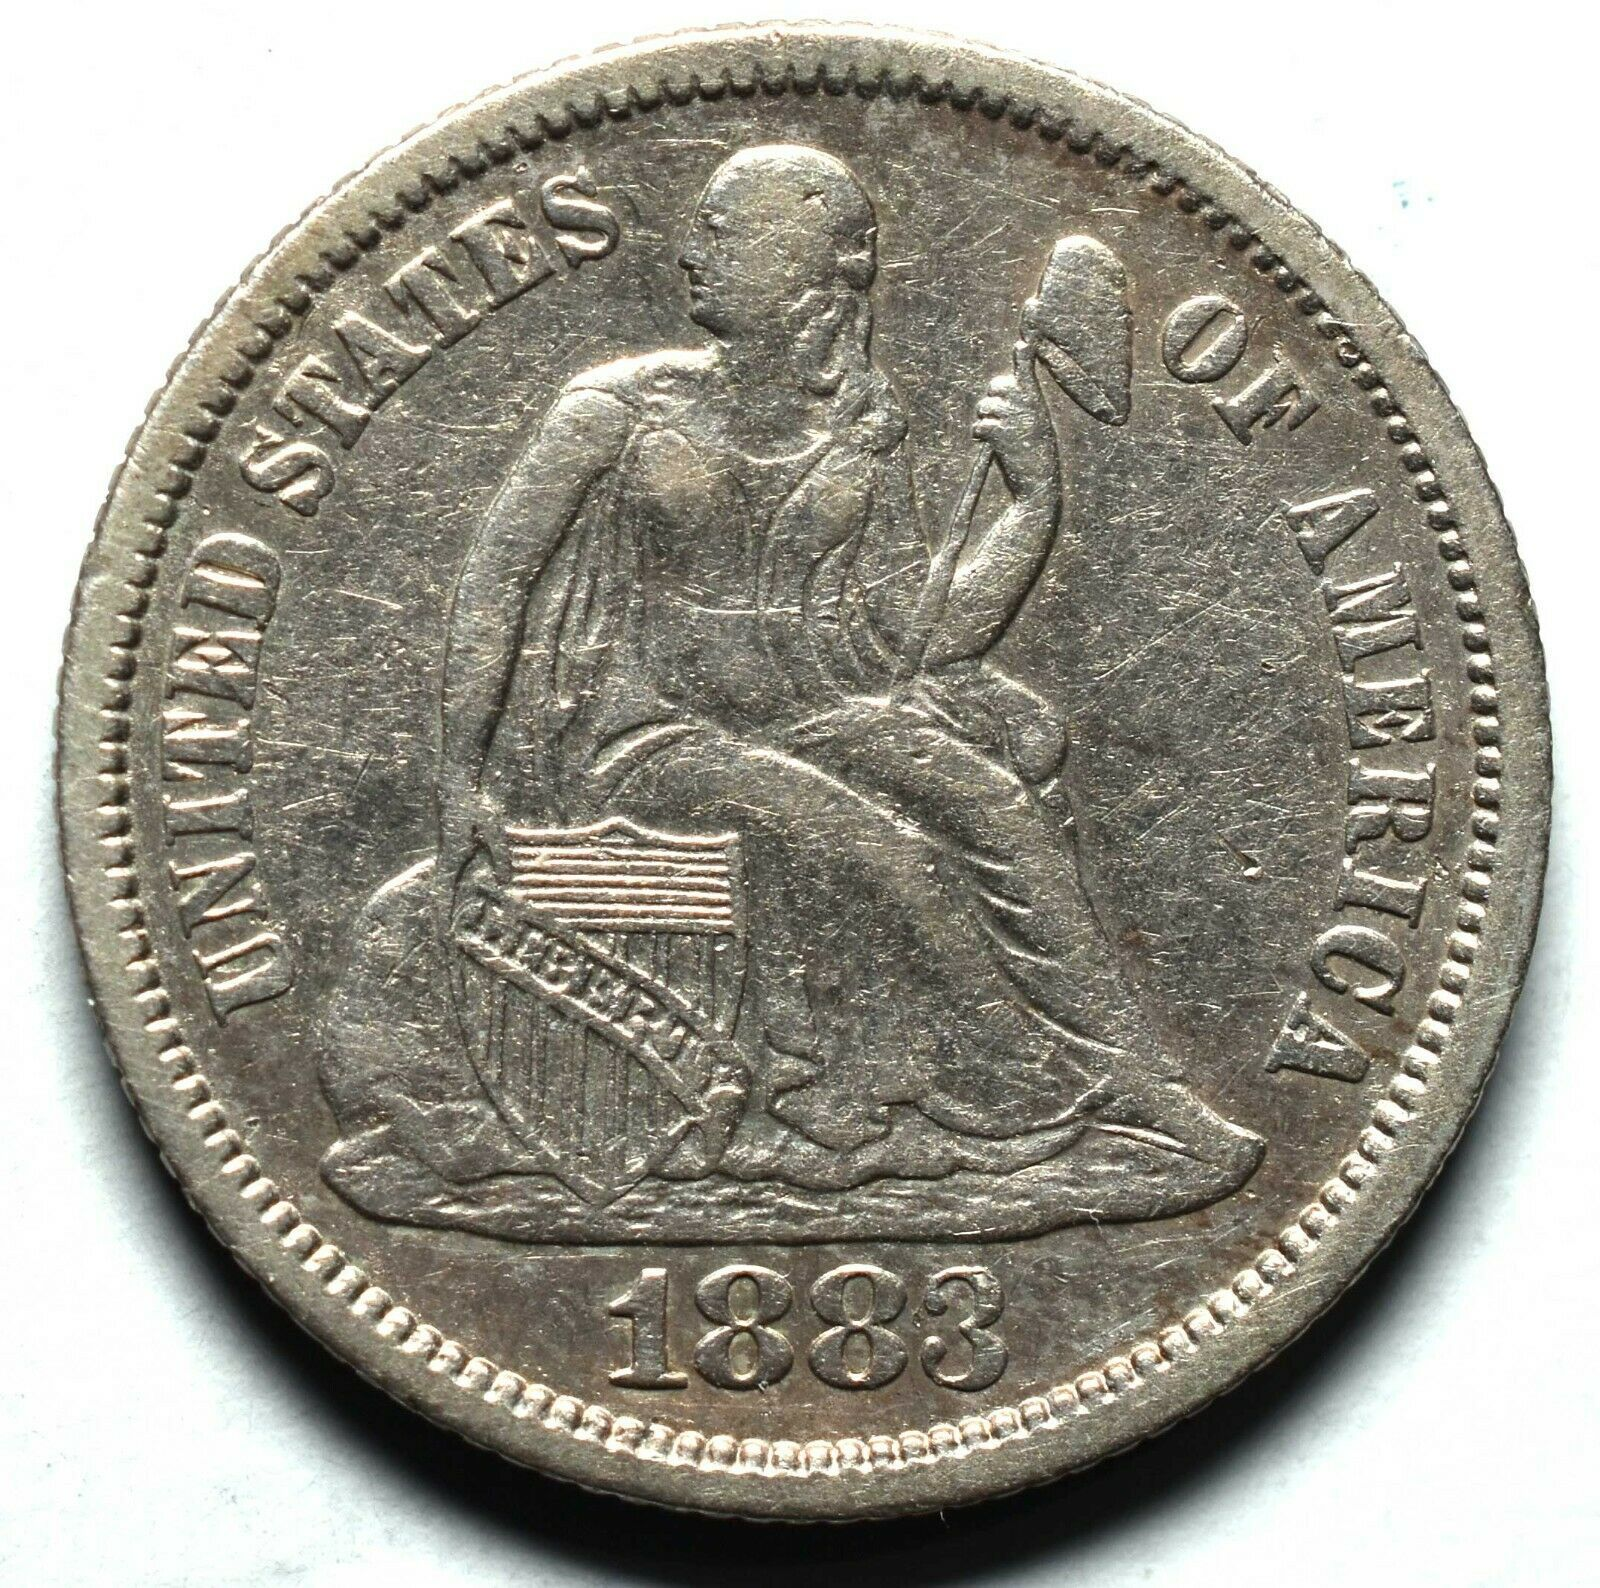 1883 Silver Seated Dime 10¢ Coin Lot# A659